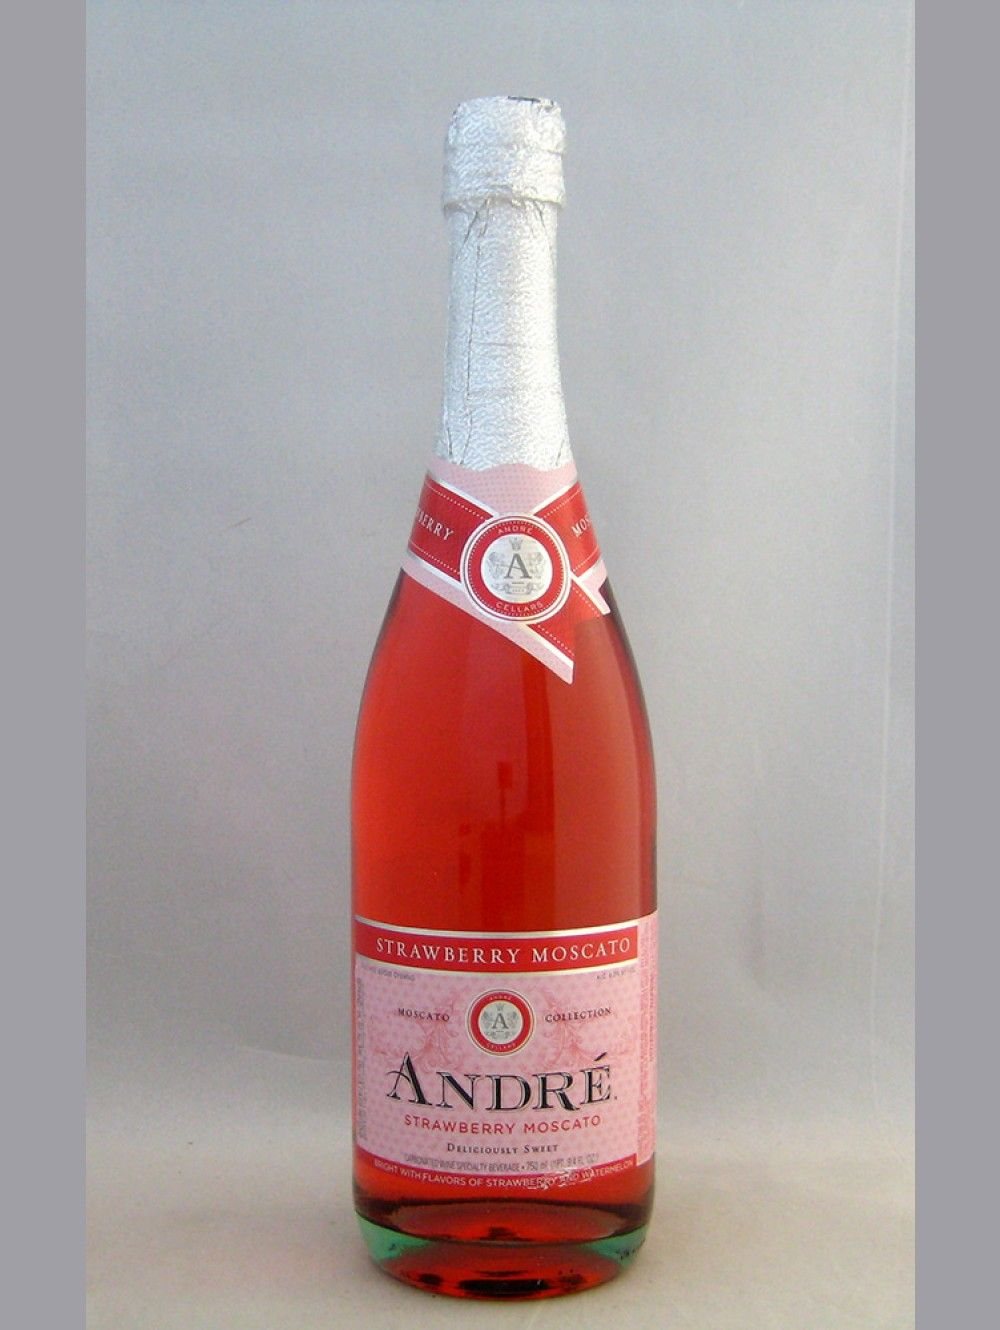 Andre Strawberry Moscato Strawberry Moscato Moscato Alcoholic Drinks